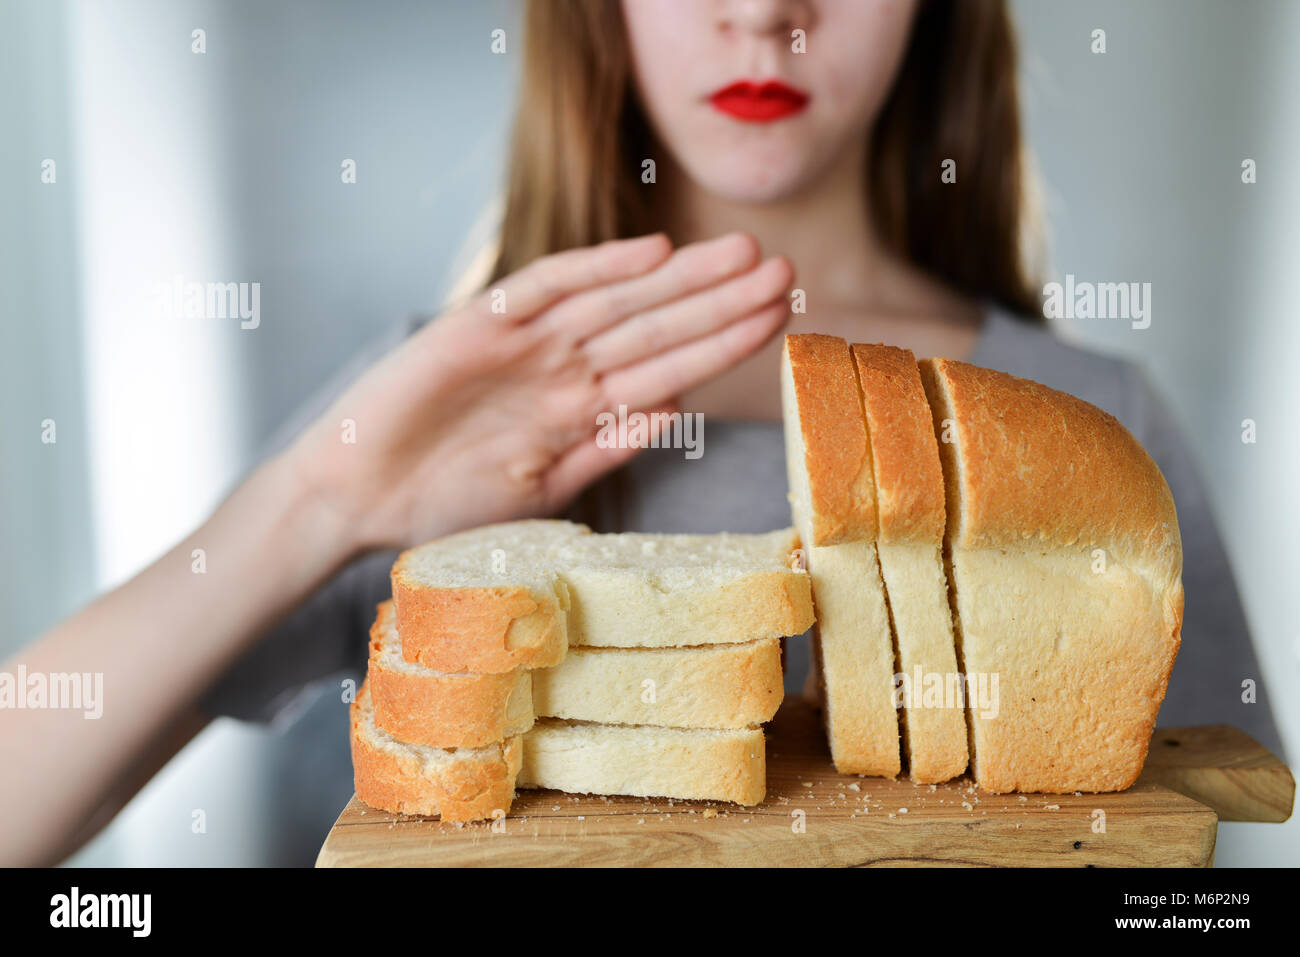 Gluten intolerance and diet concept. Young girl refuses to eat white bread. Shallow depth of field. Selective focus - Stock Image